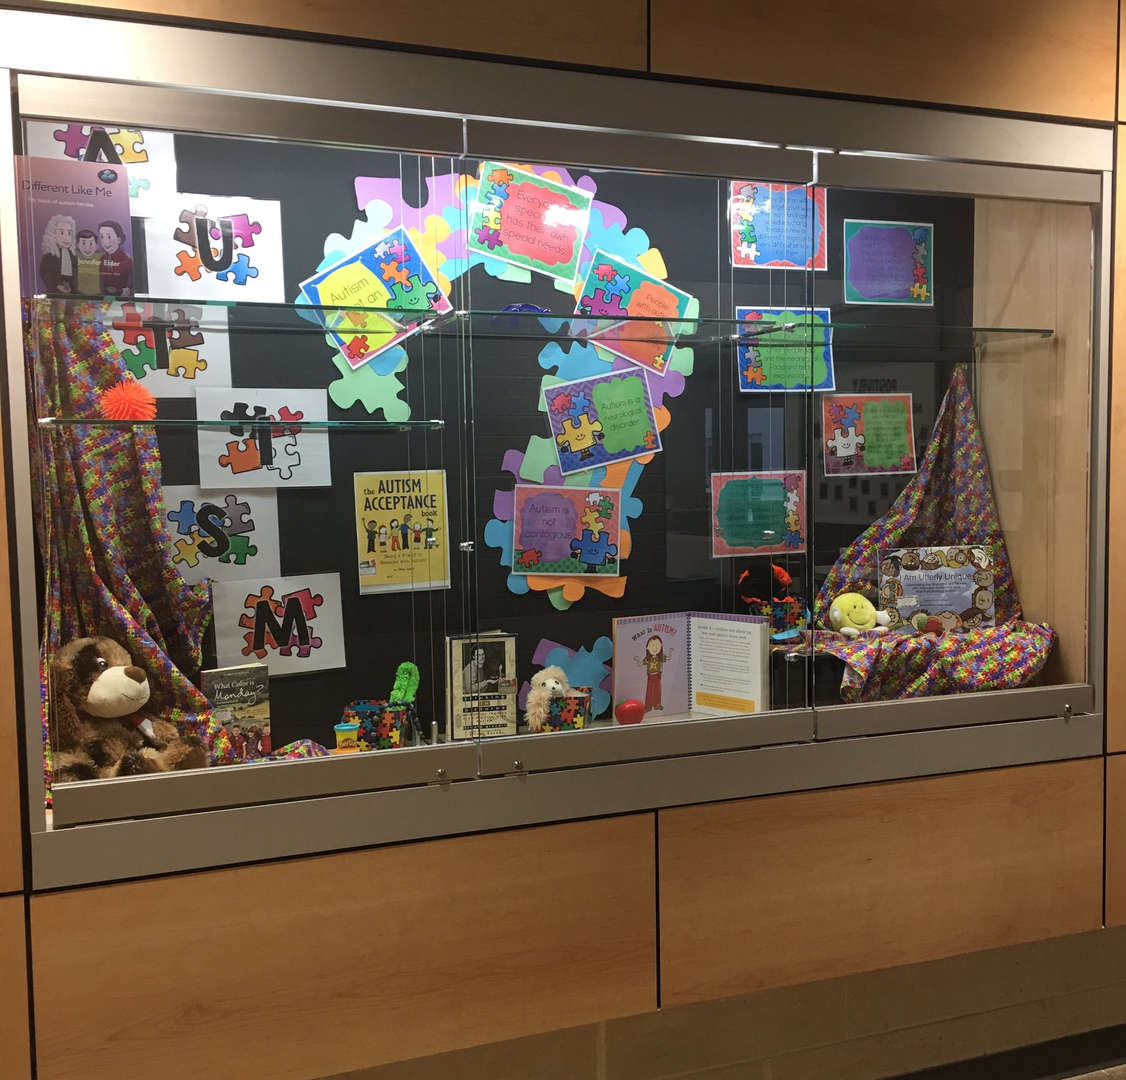 Autism Awareness month display in hallway